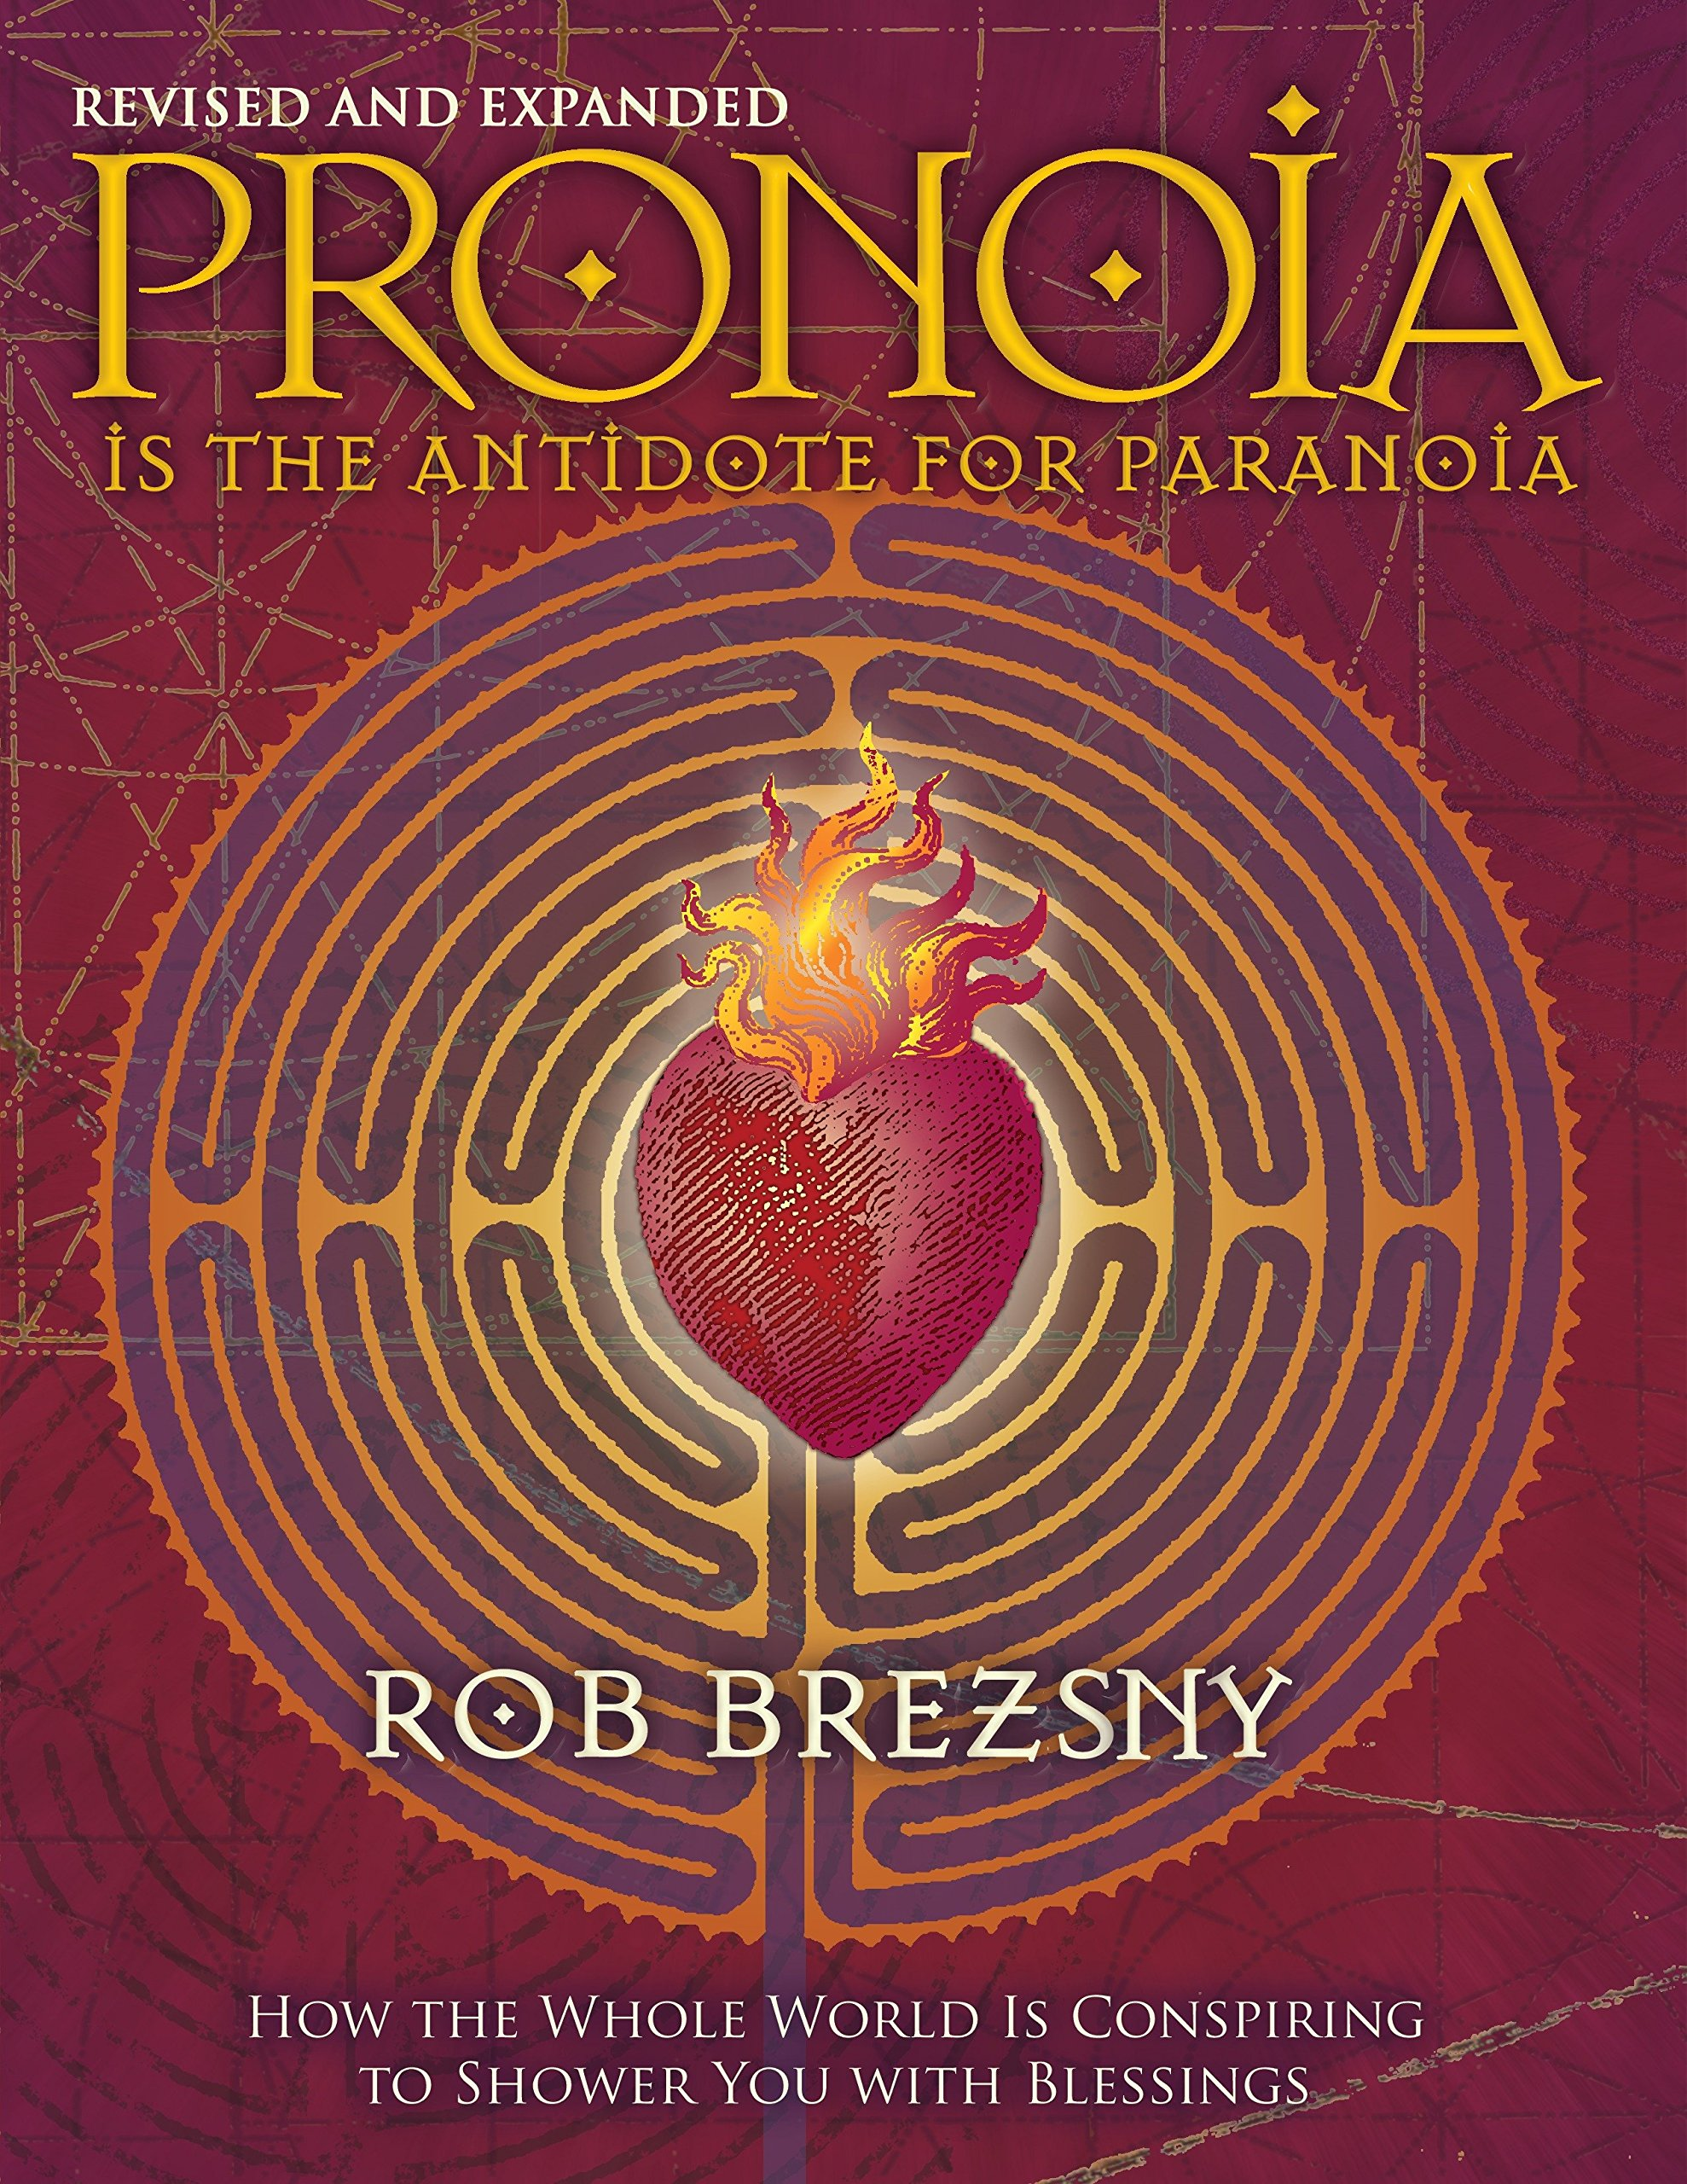 The And For Is Antidote Pronoia ParanoiaRevised ExpandedHow kO8NnP0wXZ